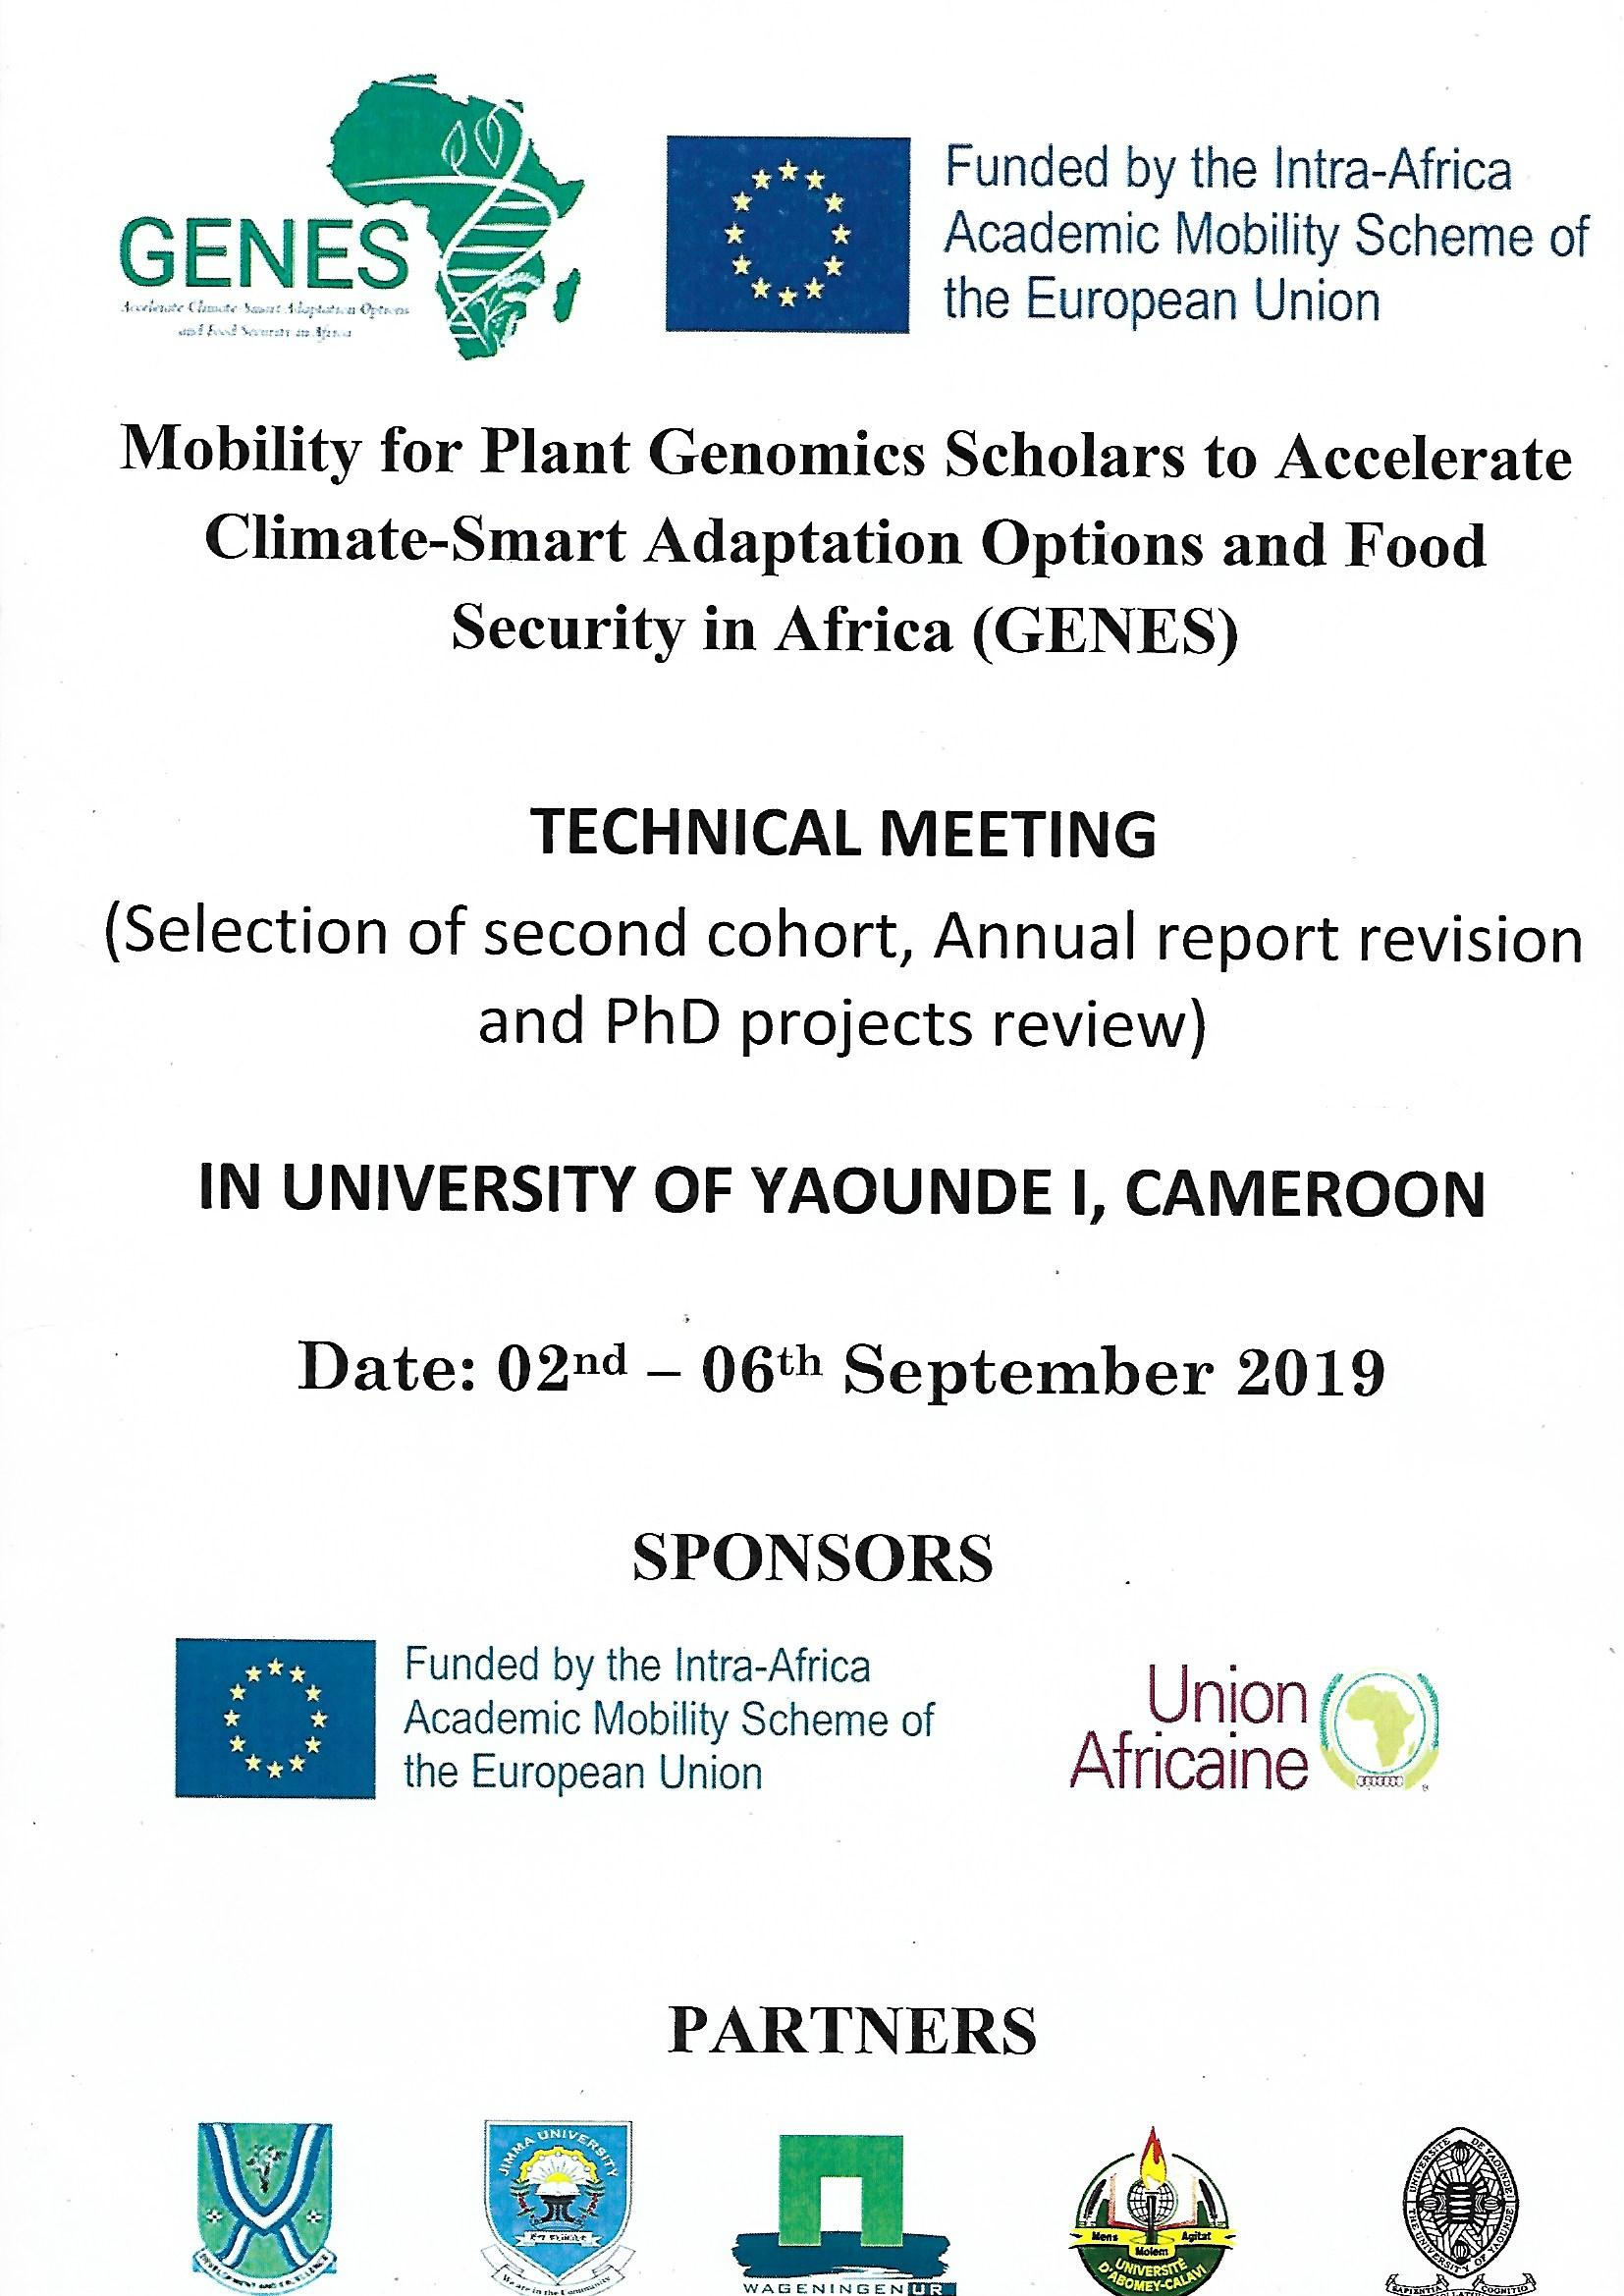 Mobility for Genomics Scholars to Accelerate Climate-Smart Adaptation Options And Food Security in Africa (GENES)